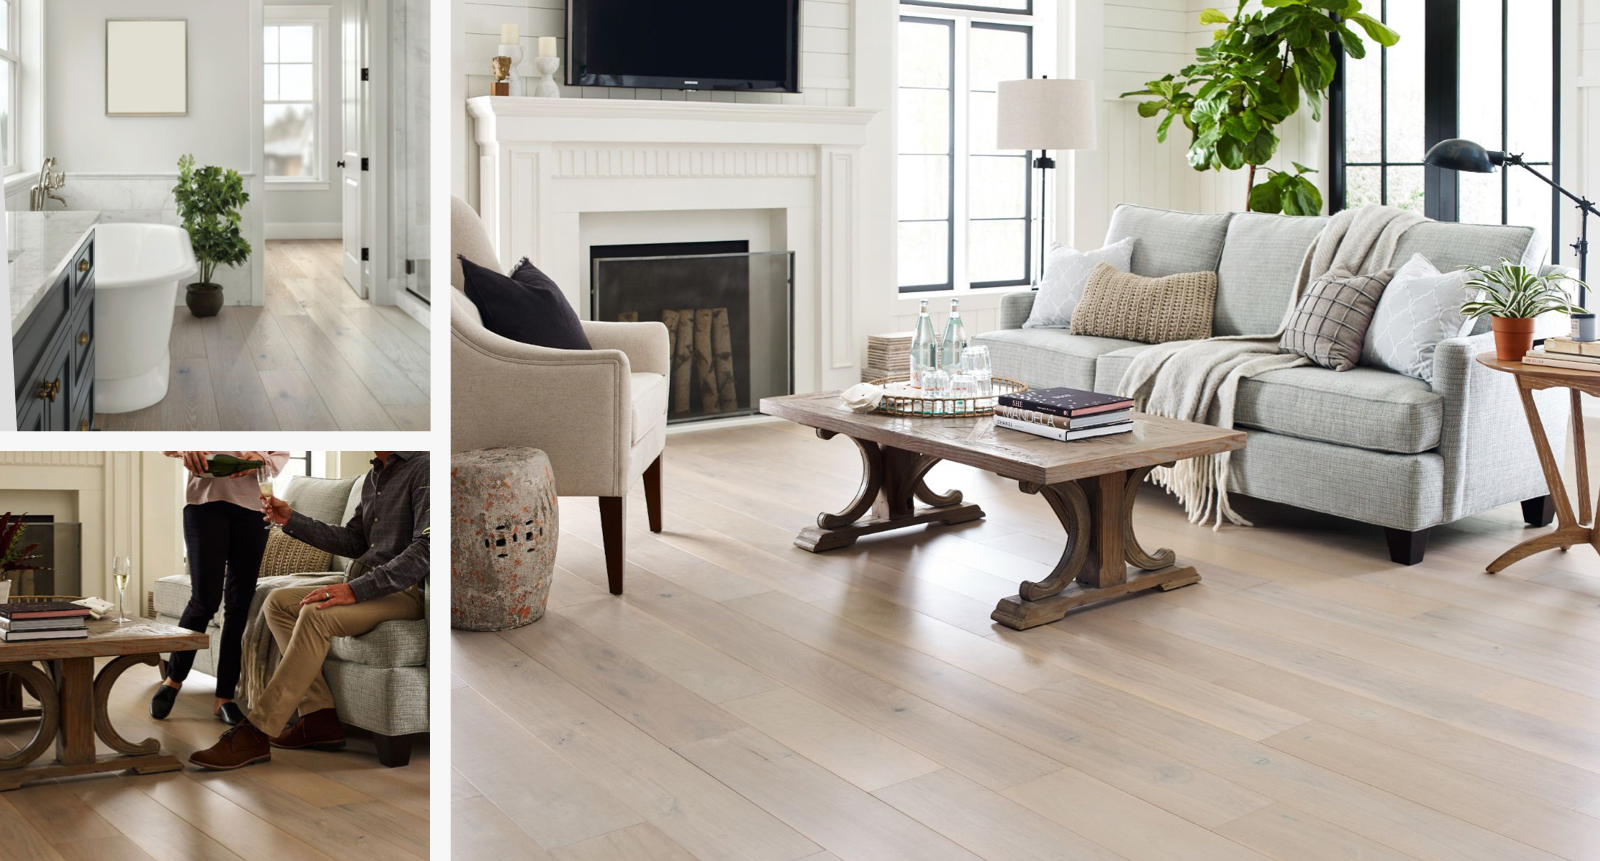 Floorte waterproof hardwood flooring for your home | TS Home Design Center